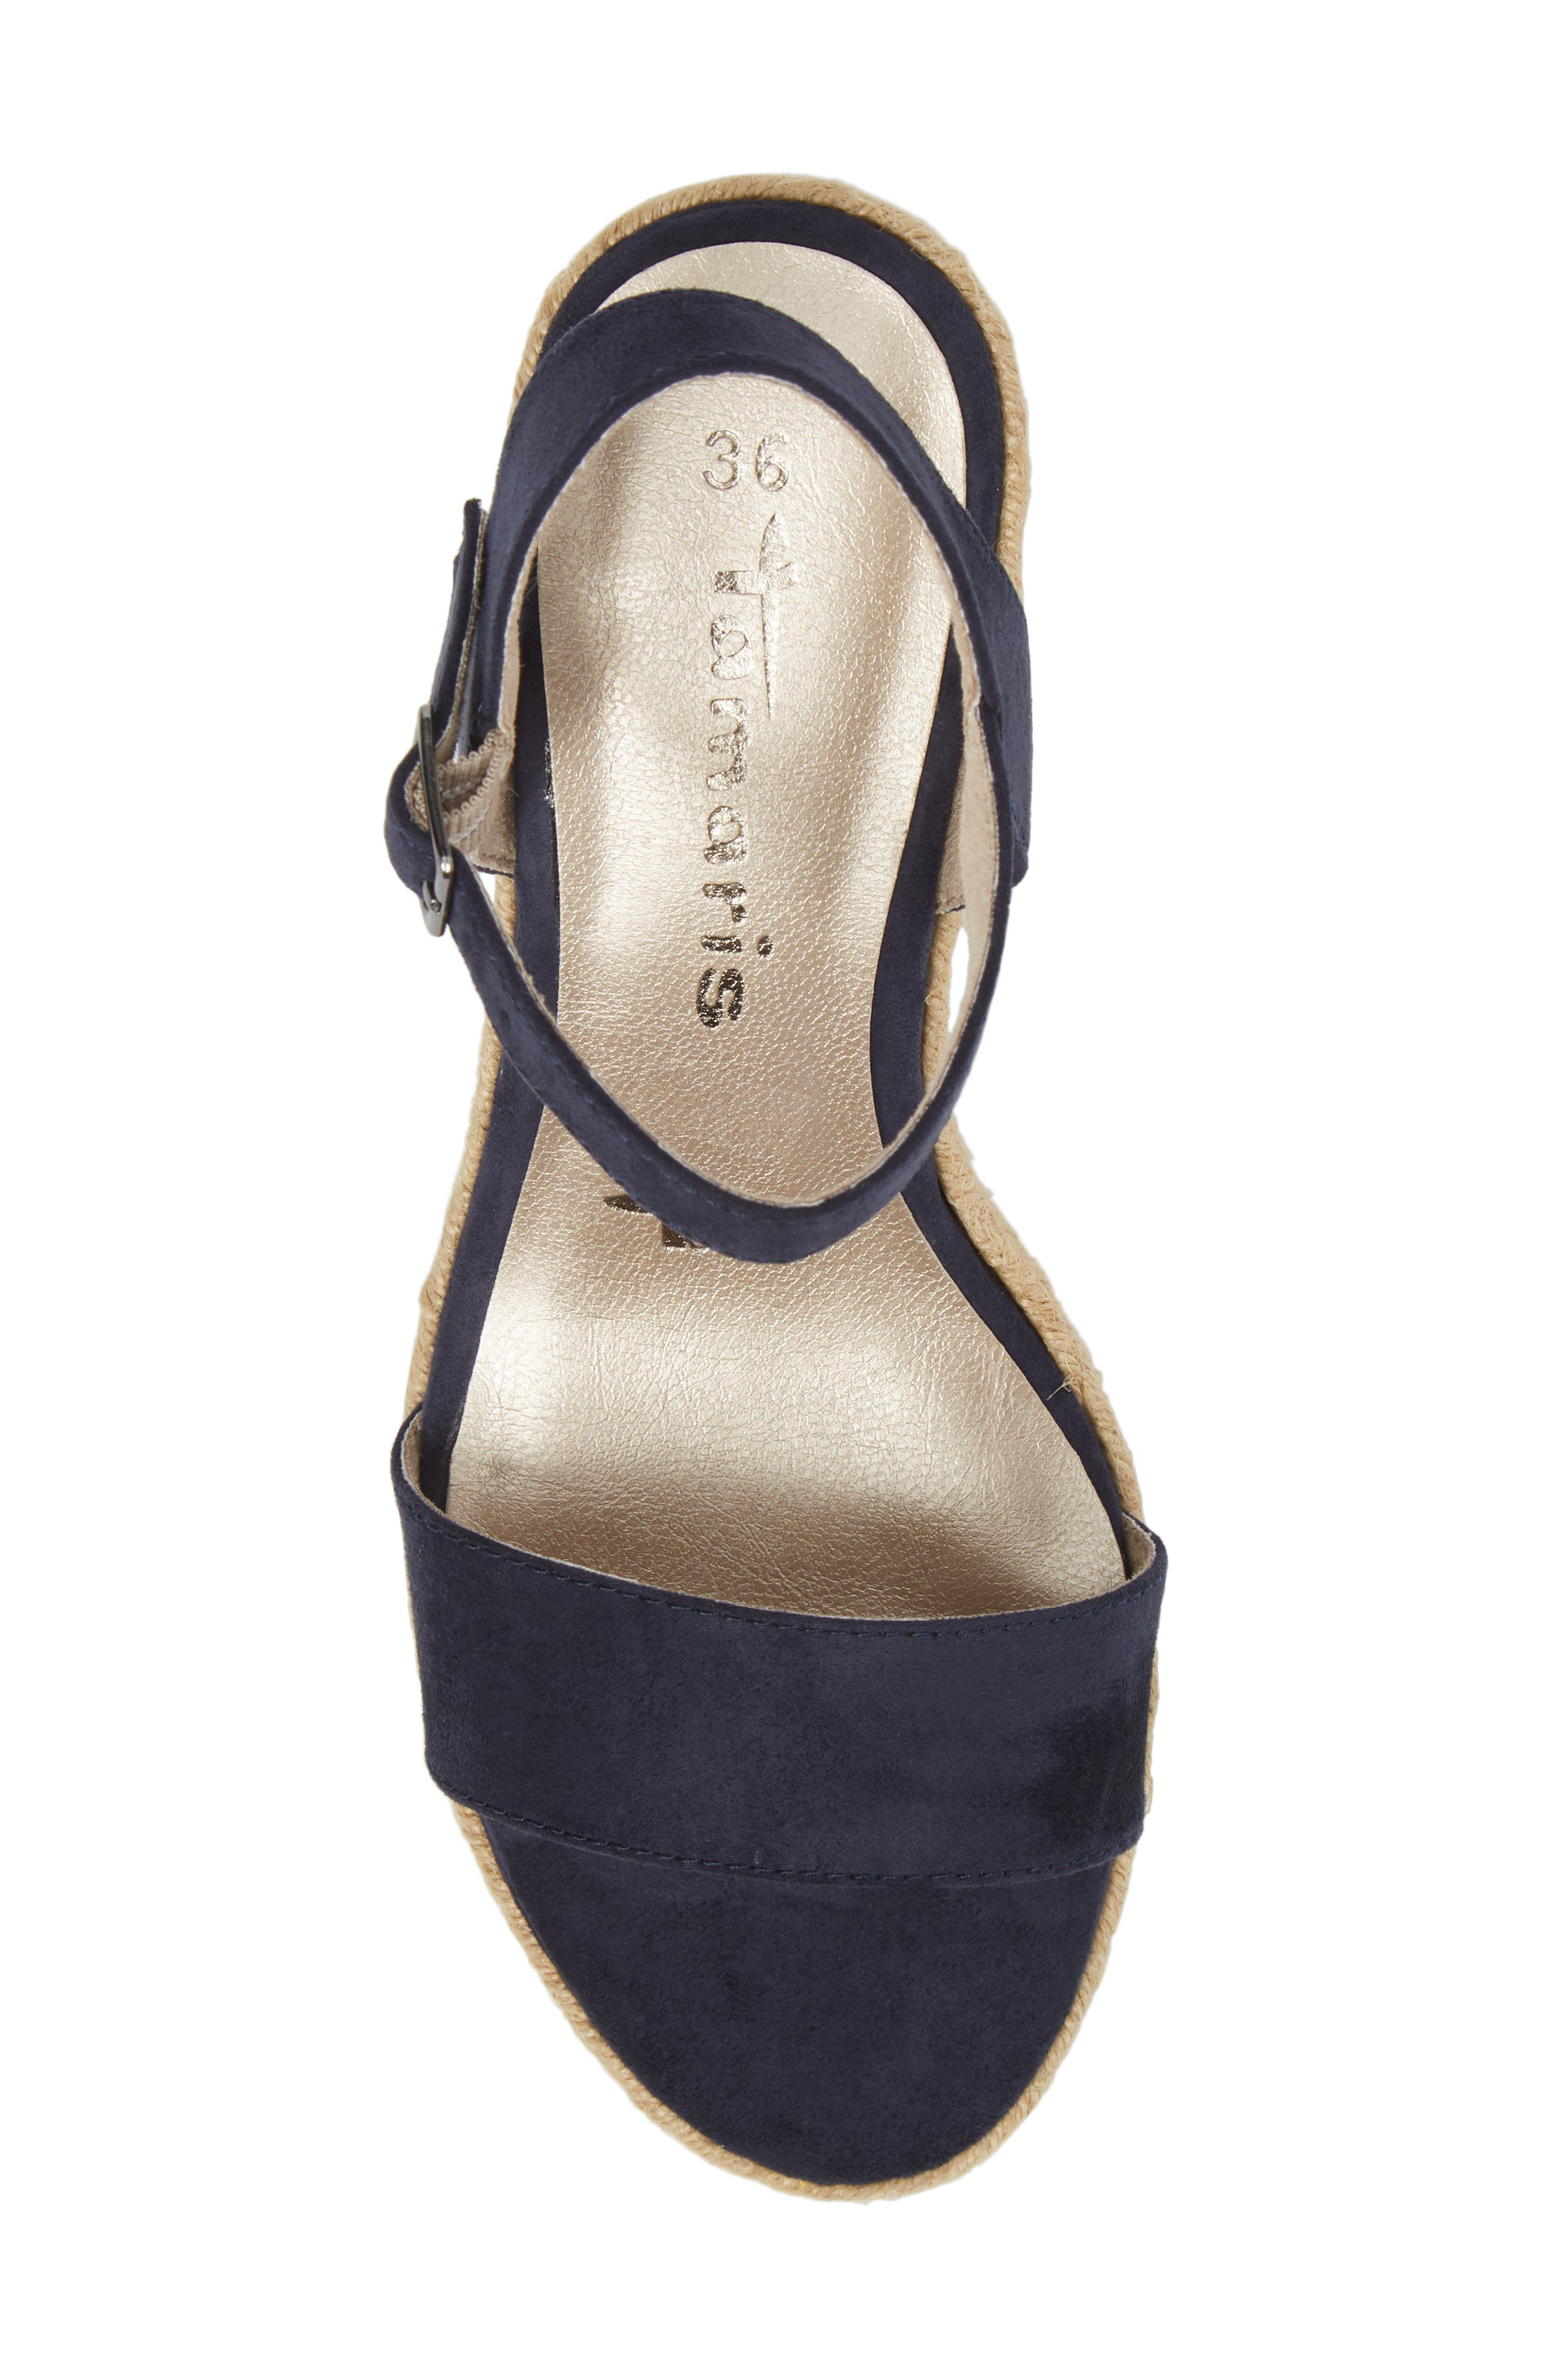 Livia Espadrille Wedge Sandal,                             Alternate thumbnail 5, color,                             NAVY FABRIC